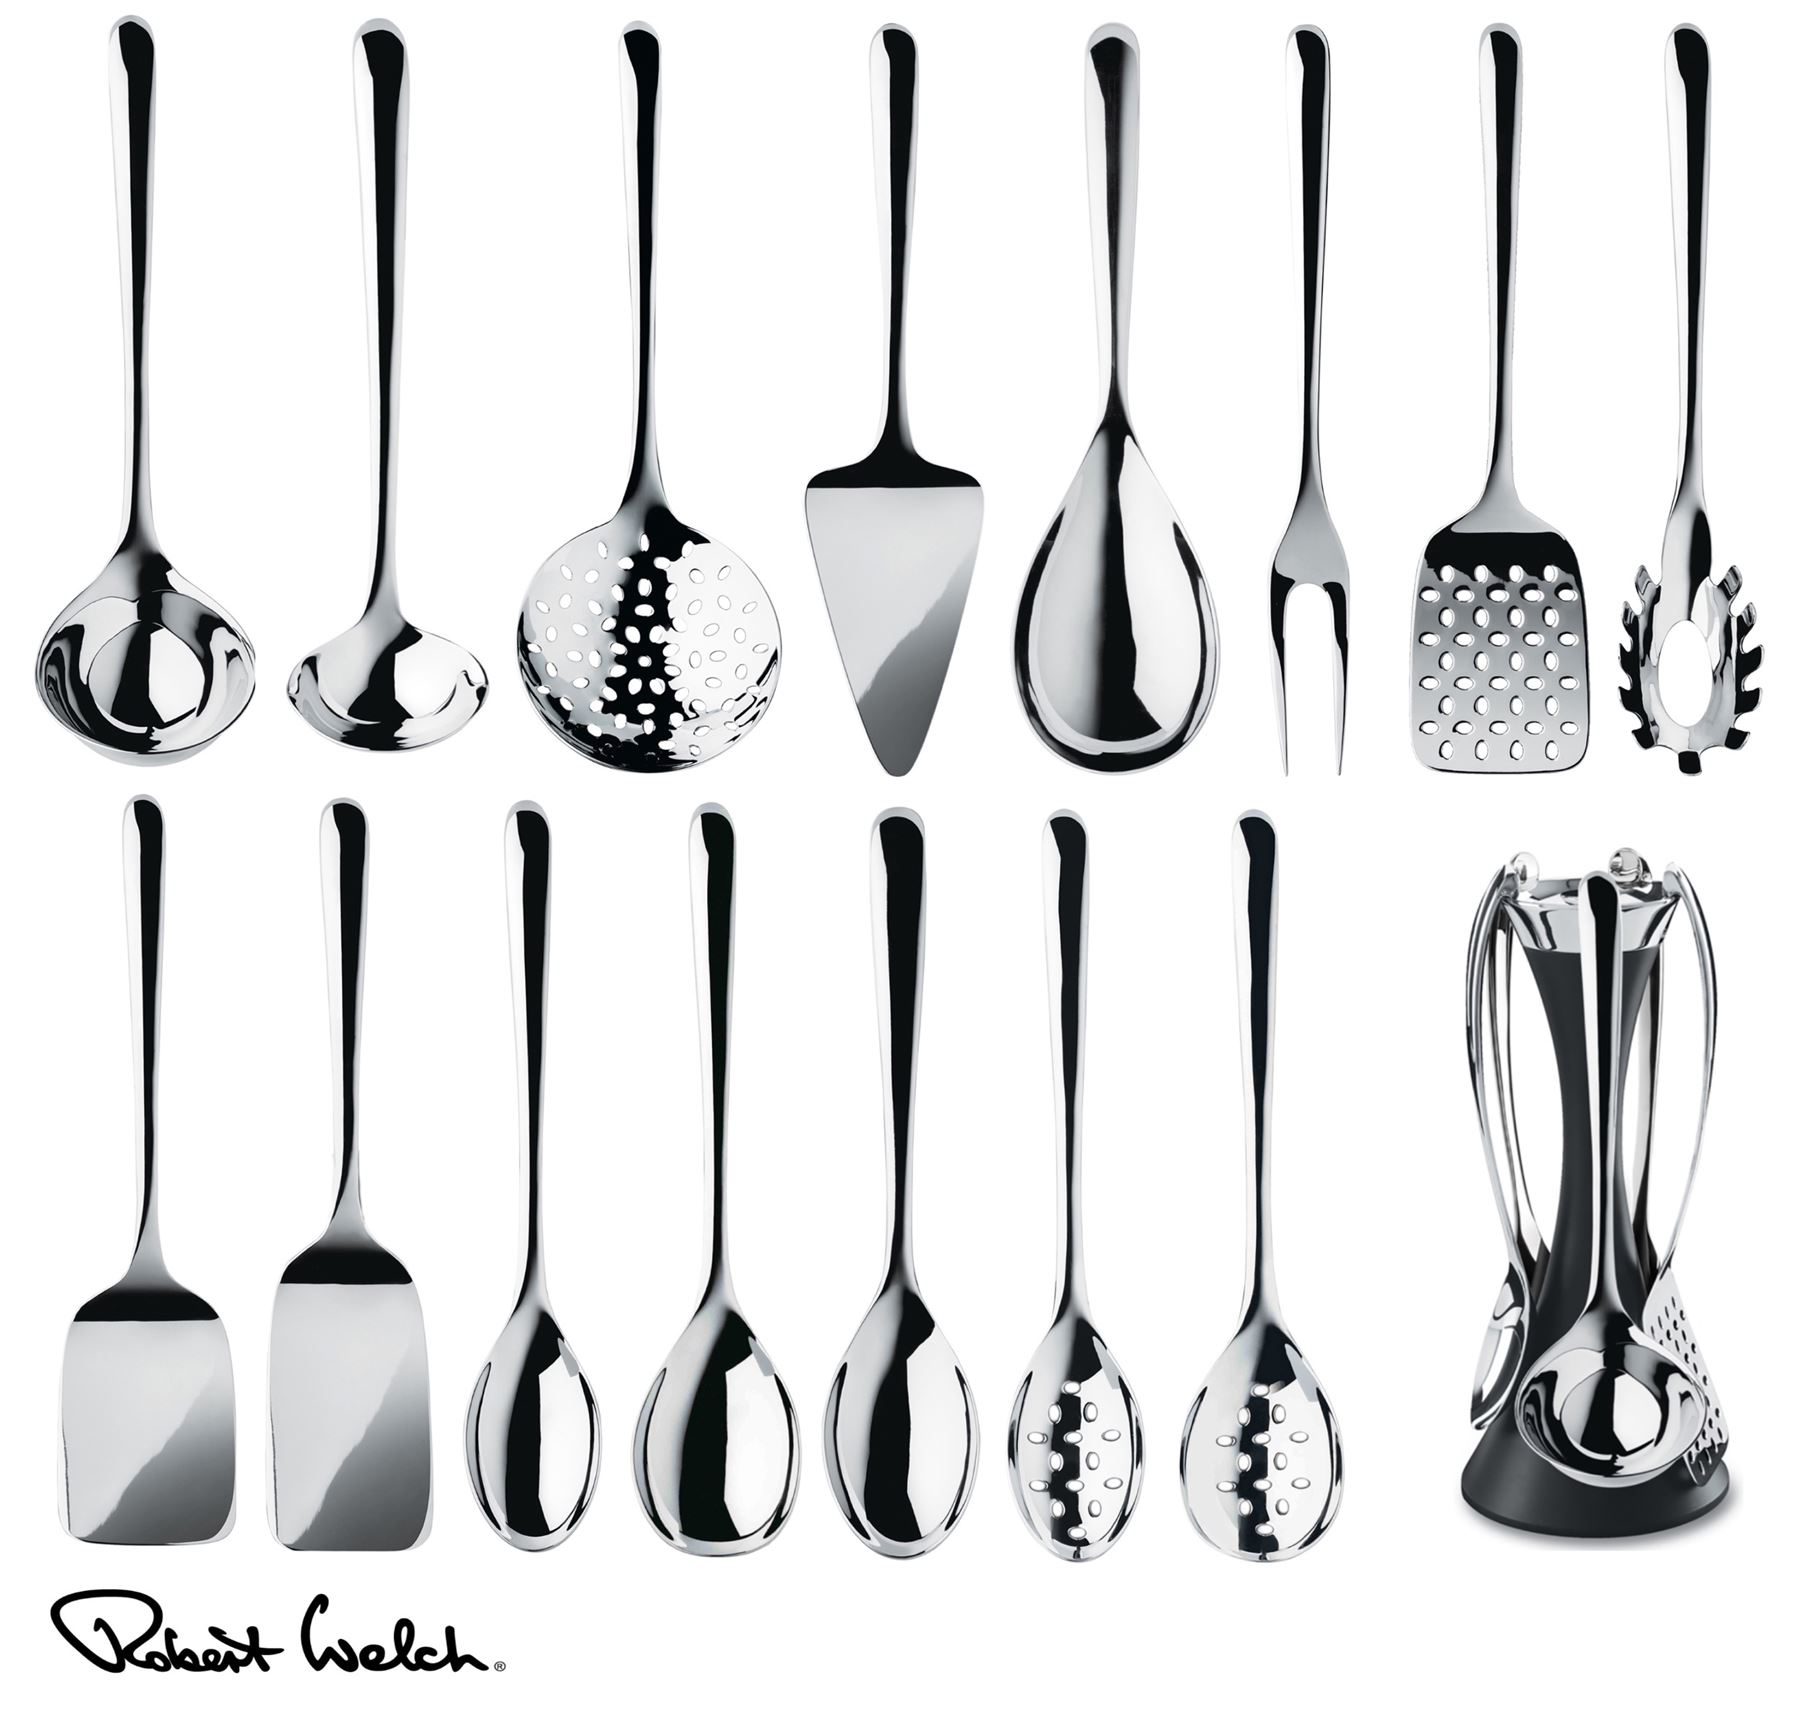 Robert Welch Signature Kitchen Utensils Set, Spoon, Turner